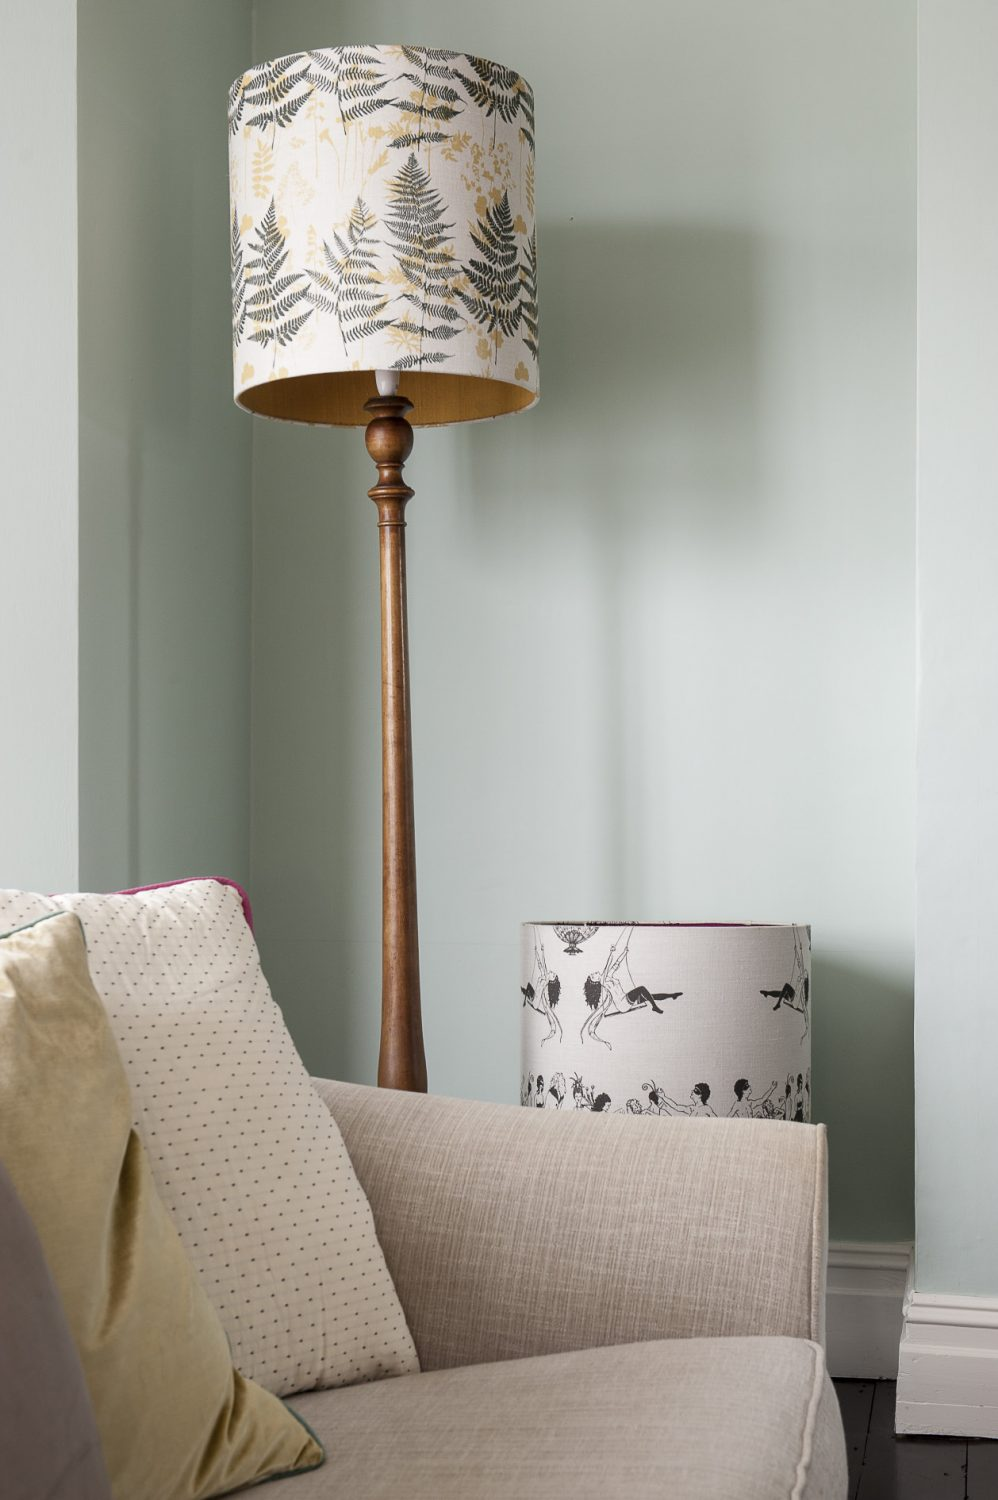 The lampshades in the sitting room are from the range Louise used to sell at Liberty, in her designs Autumn Leaves and Erotica, which was inspired by the work of Aubrey Beardsley